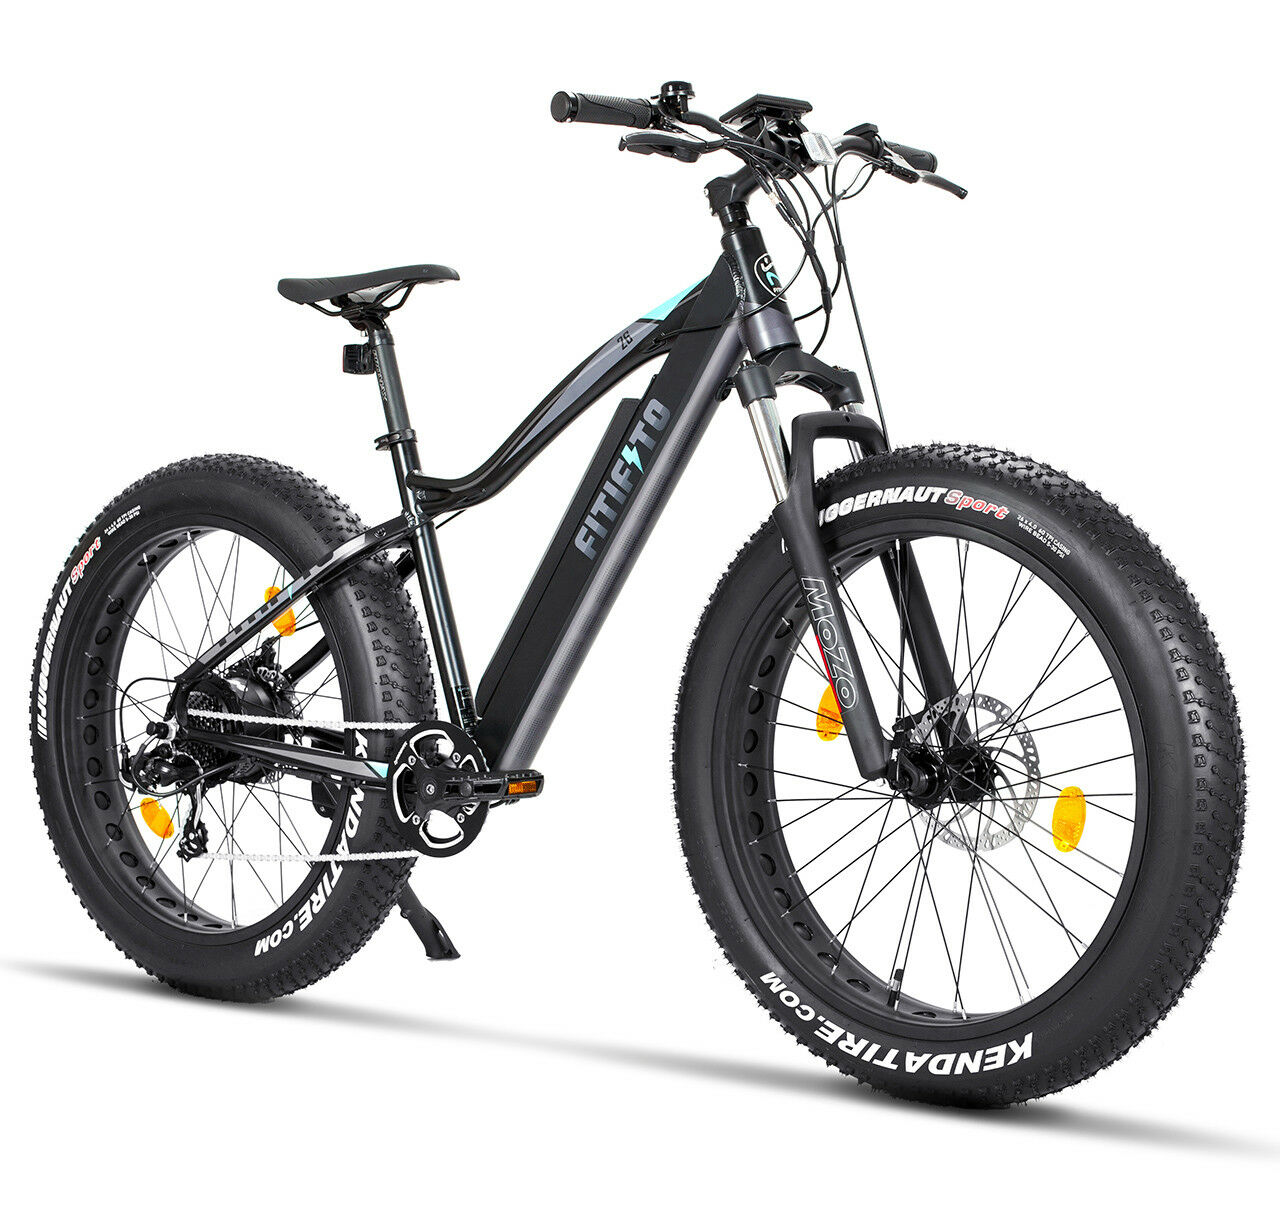 fitifito ft26 elektrofahrrad fatbike e bike pedelec 36v13ah samsung akku 26 zoll eur. Black Bedroom Furniture Sets. Home Design Ideas